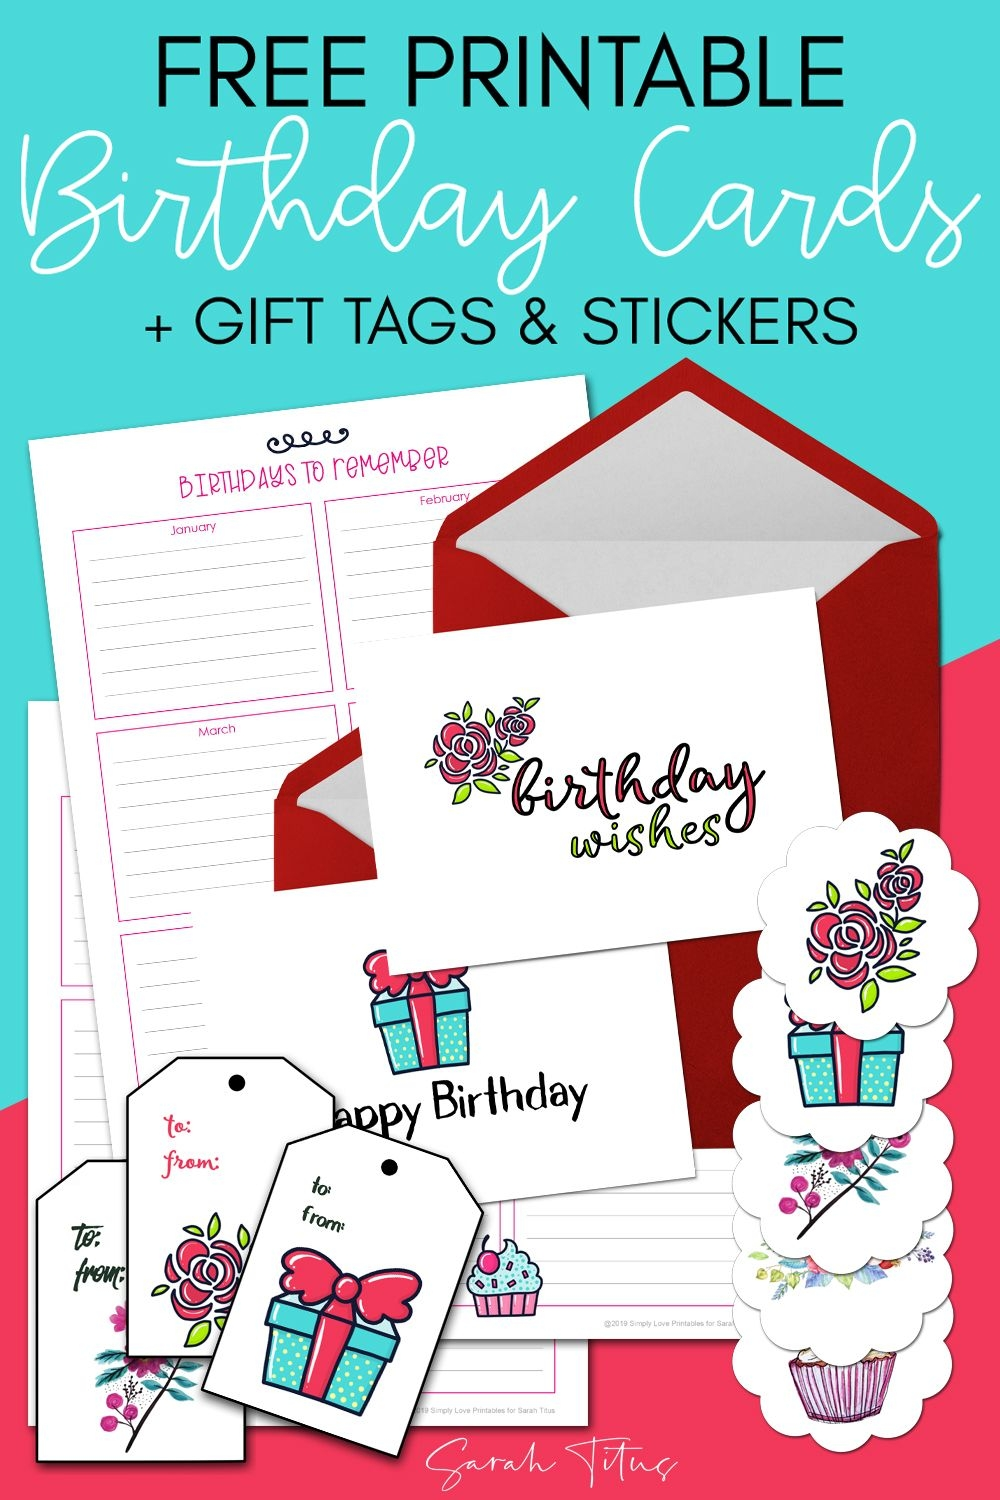 free printable birthday cards gift tags & stickers sarah